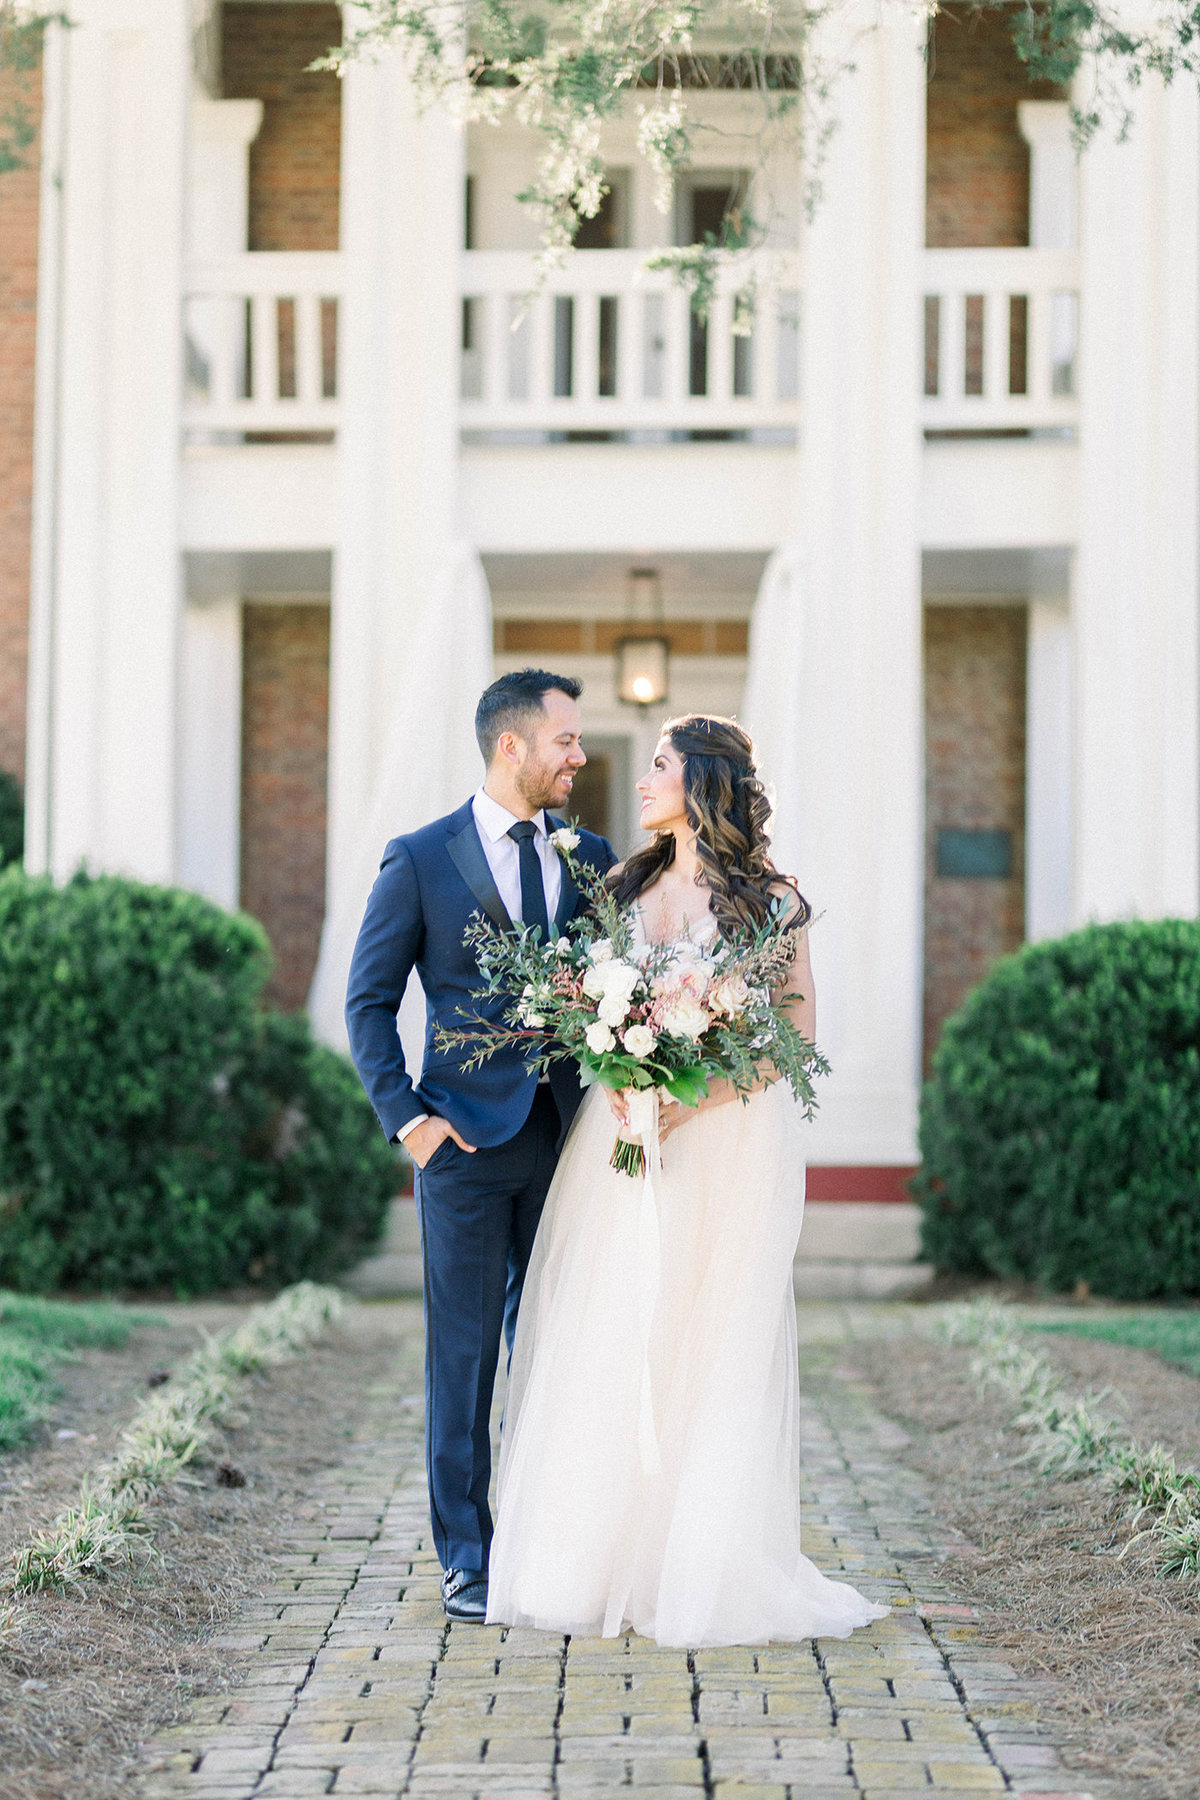 Cedarmont Nashville Editorial - Sarah Sunstrom Photography - Fine Art Wedding Photographer - 19